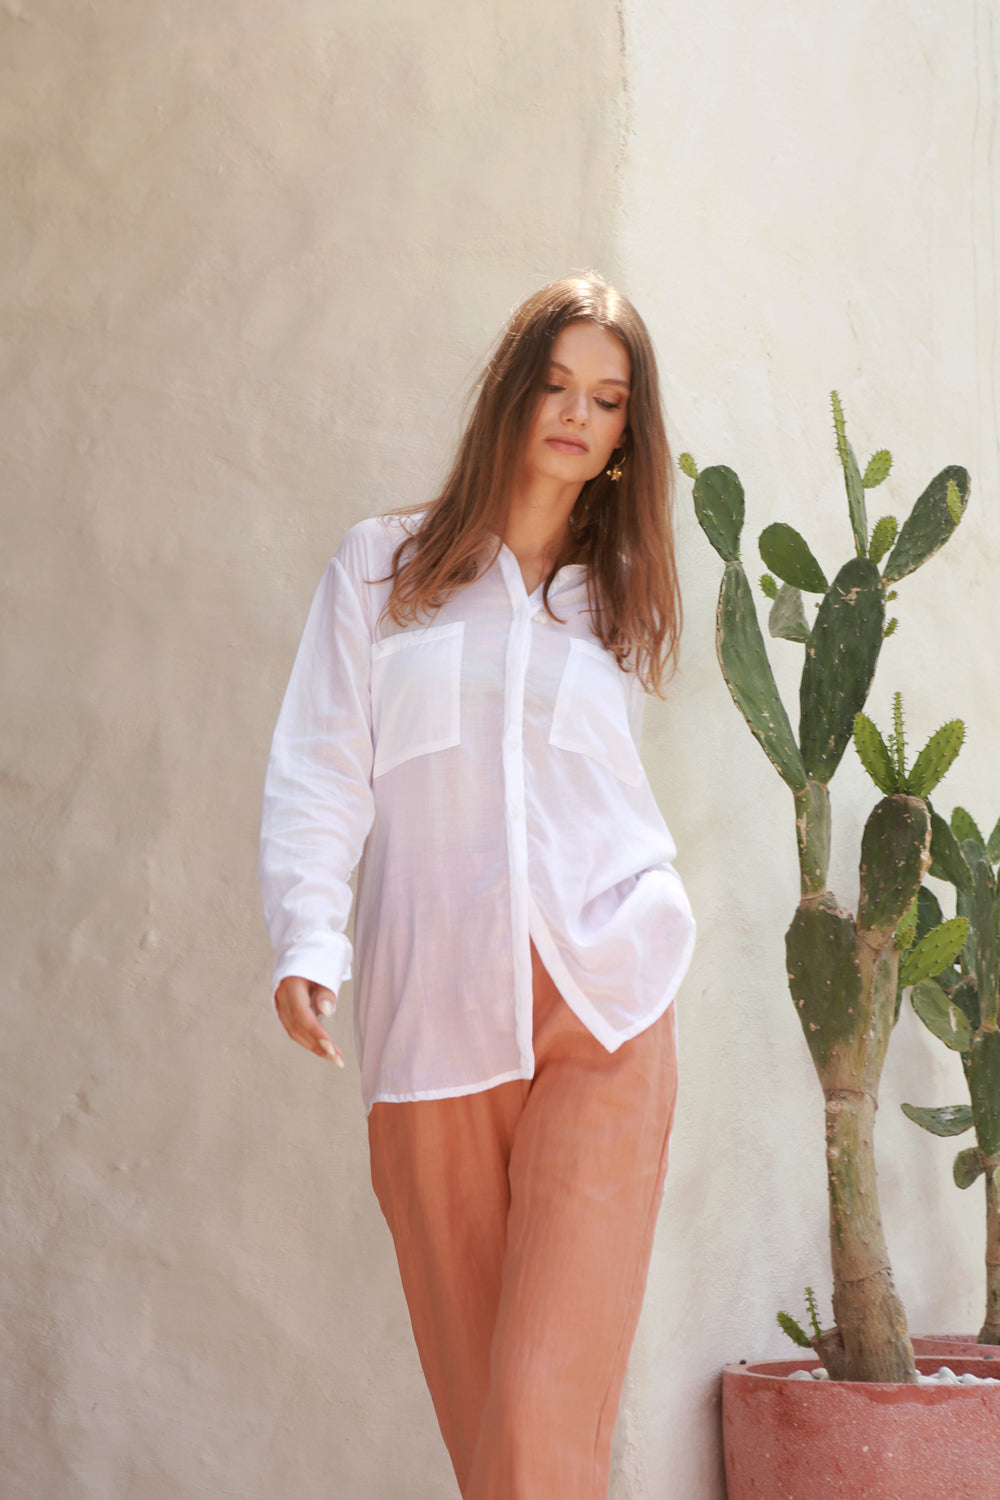 La Confection - The Cruise - Long Sleeve Button Up Shirt in White